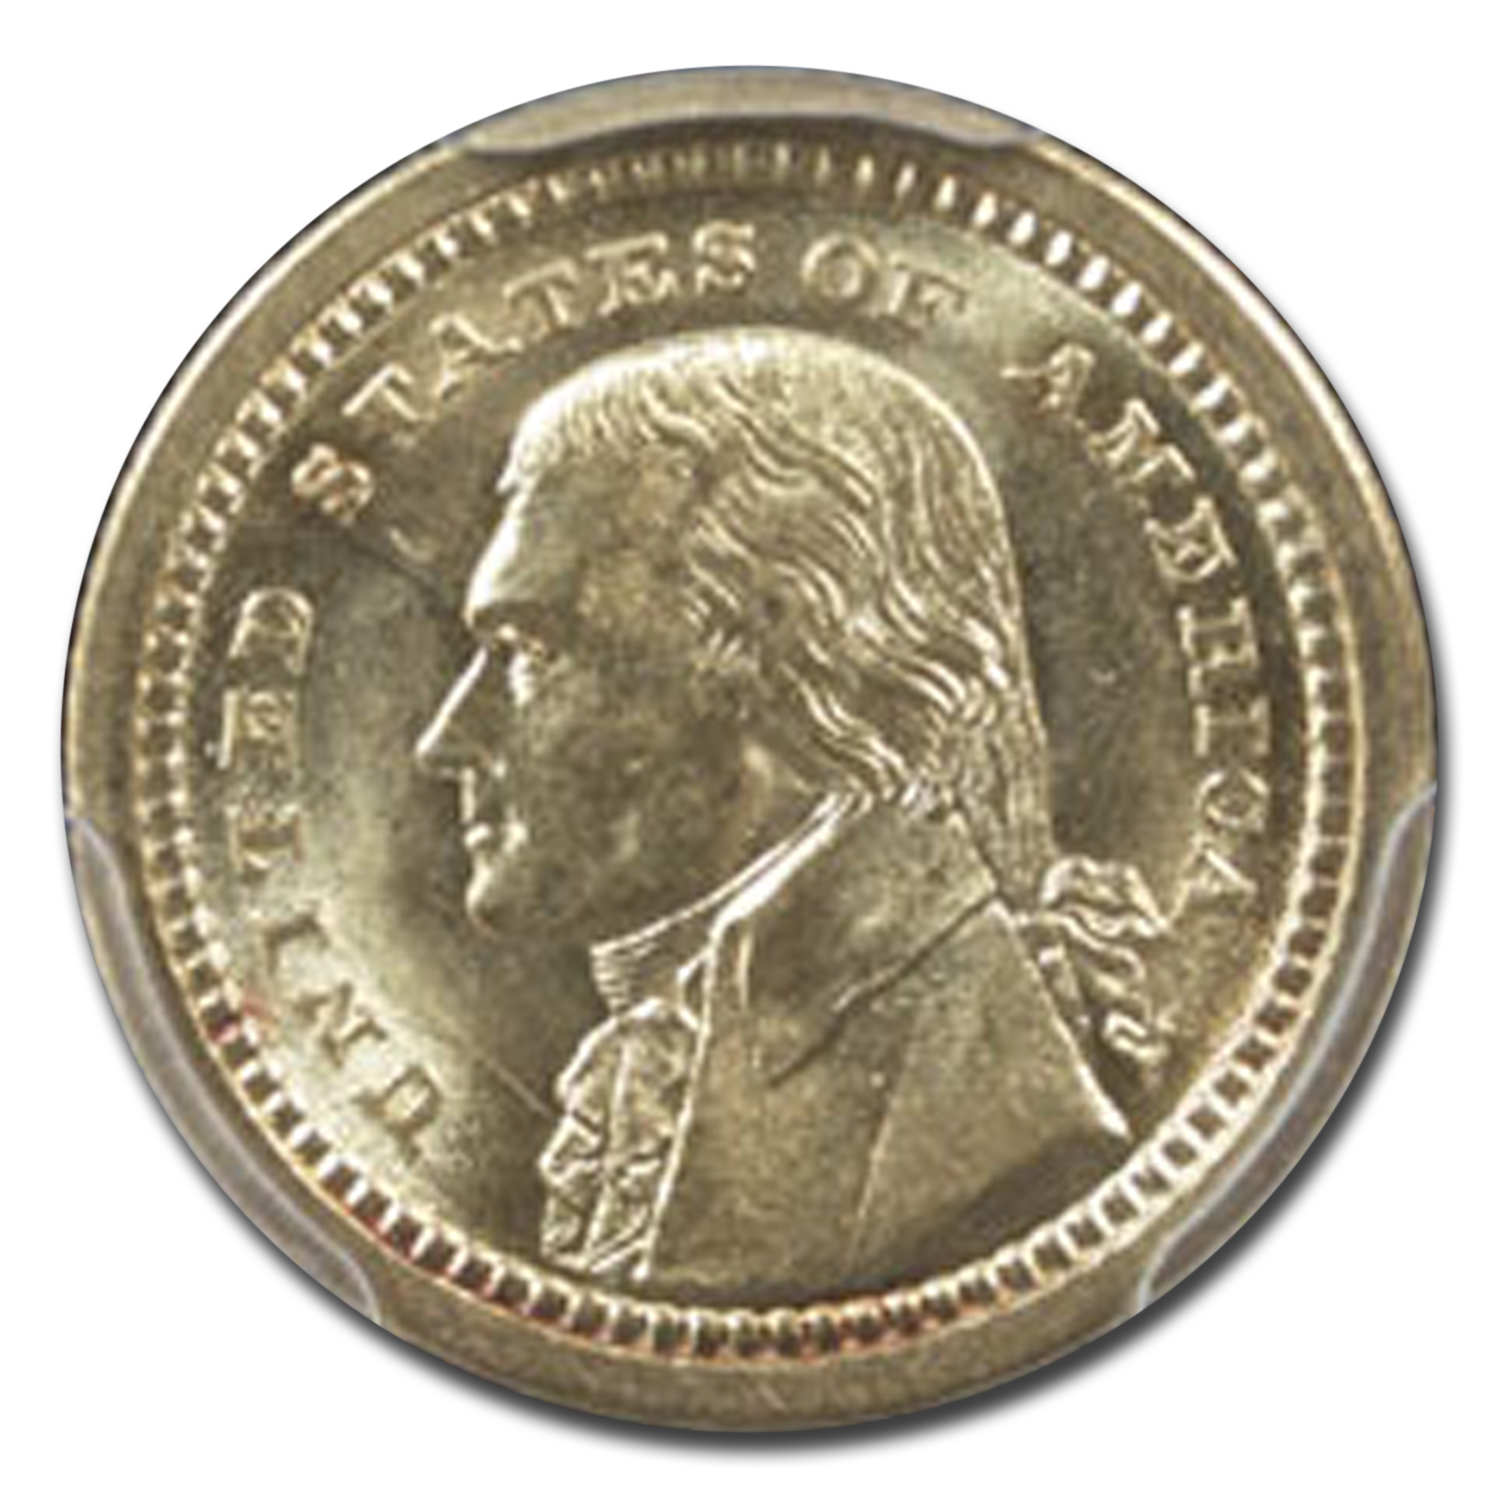 1903 $1.00 Gold Louisiana Purchase - Jefferson MS-63 PCGS